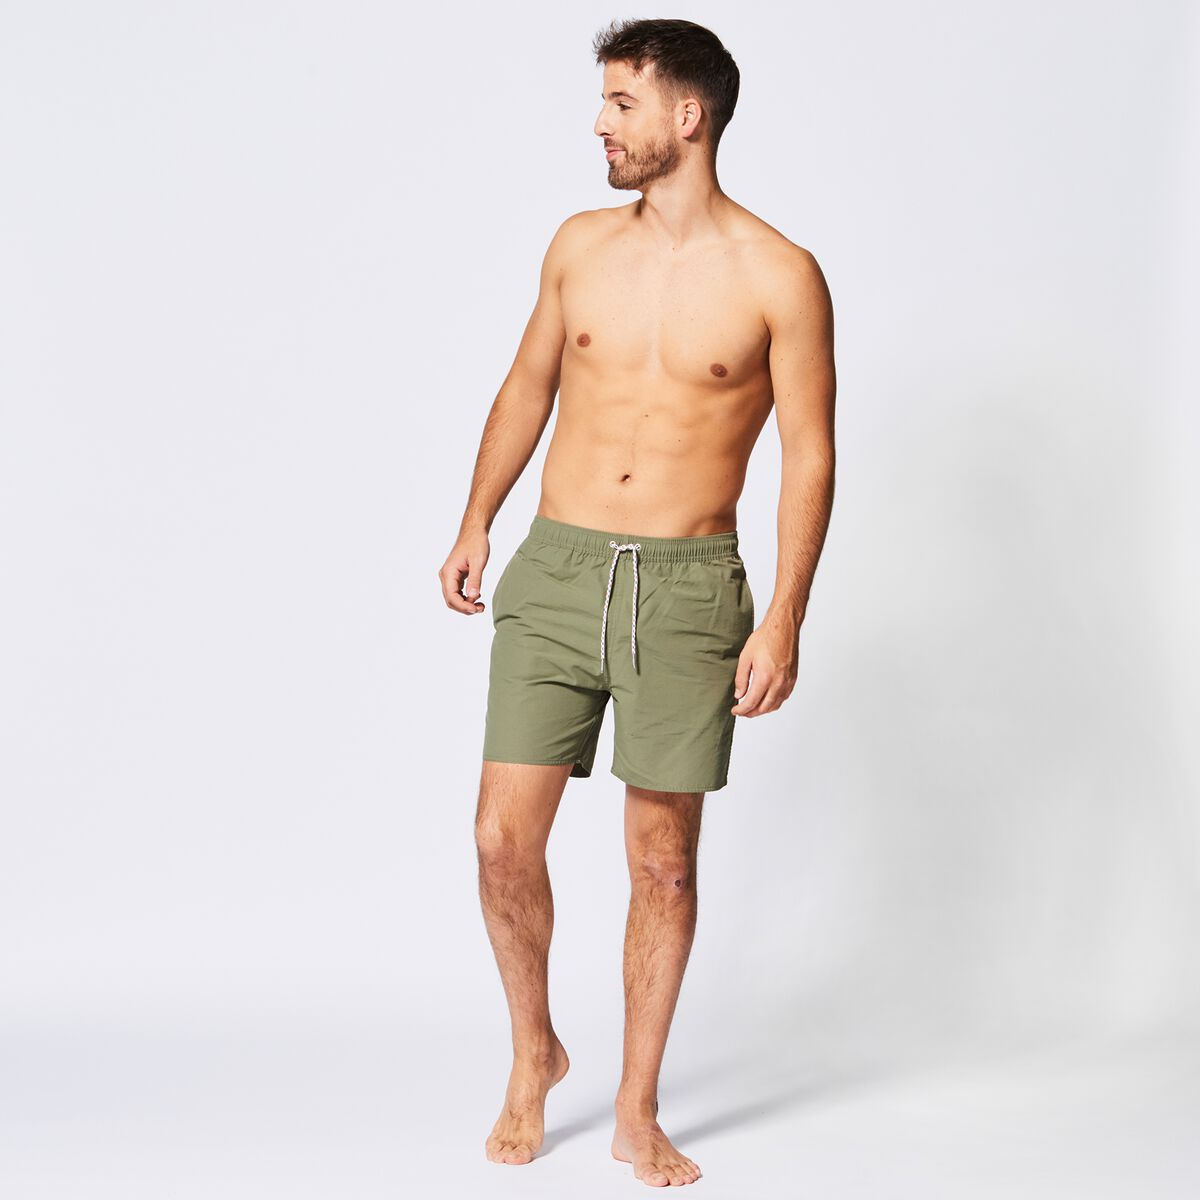 ab2d2a4f3f Men Swimming trunks Arizona Green Buy Online